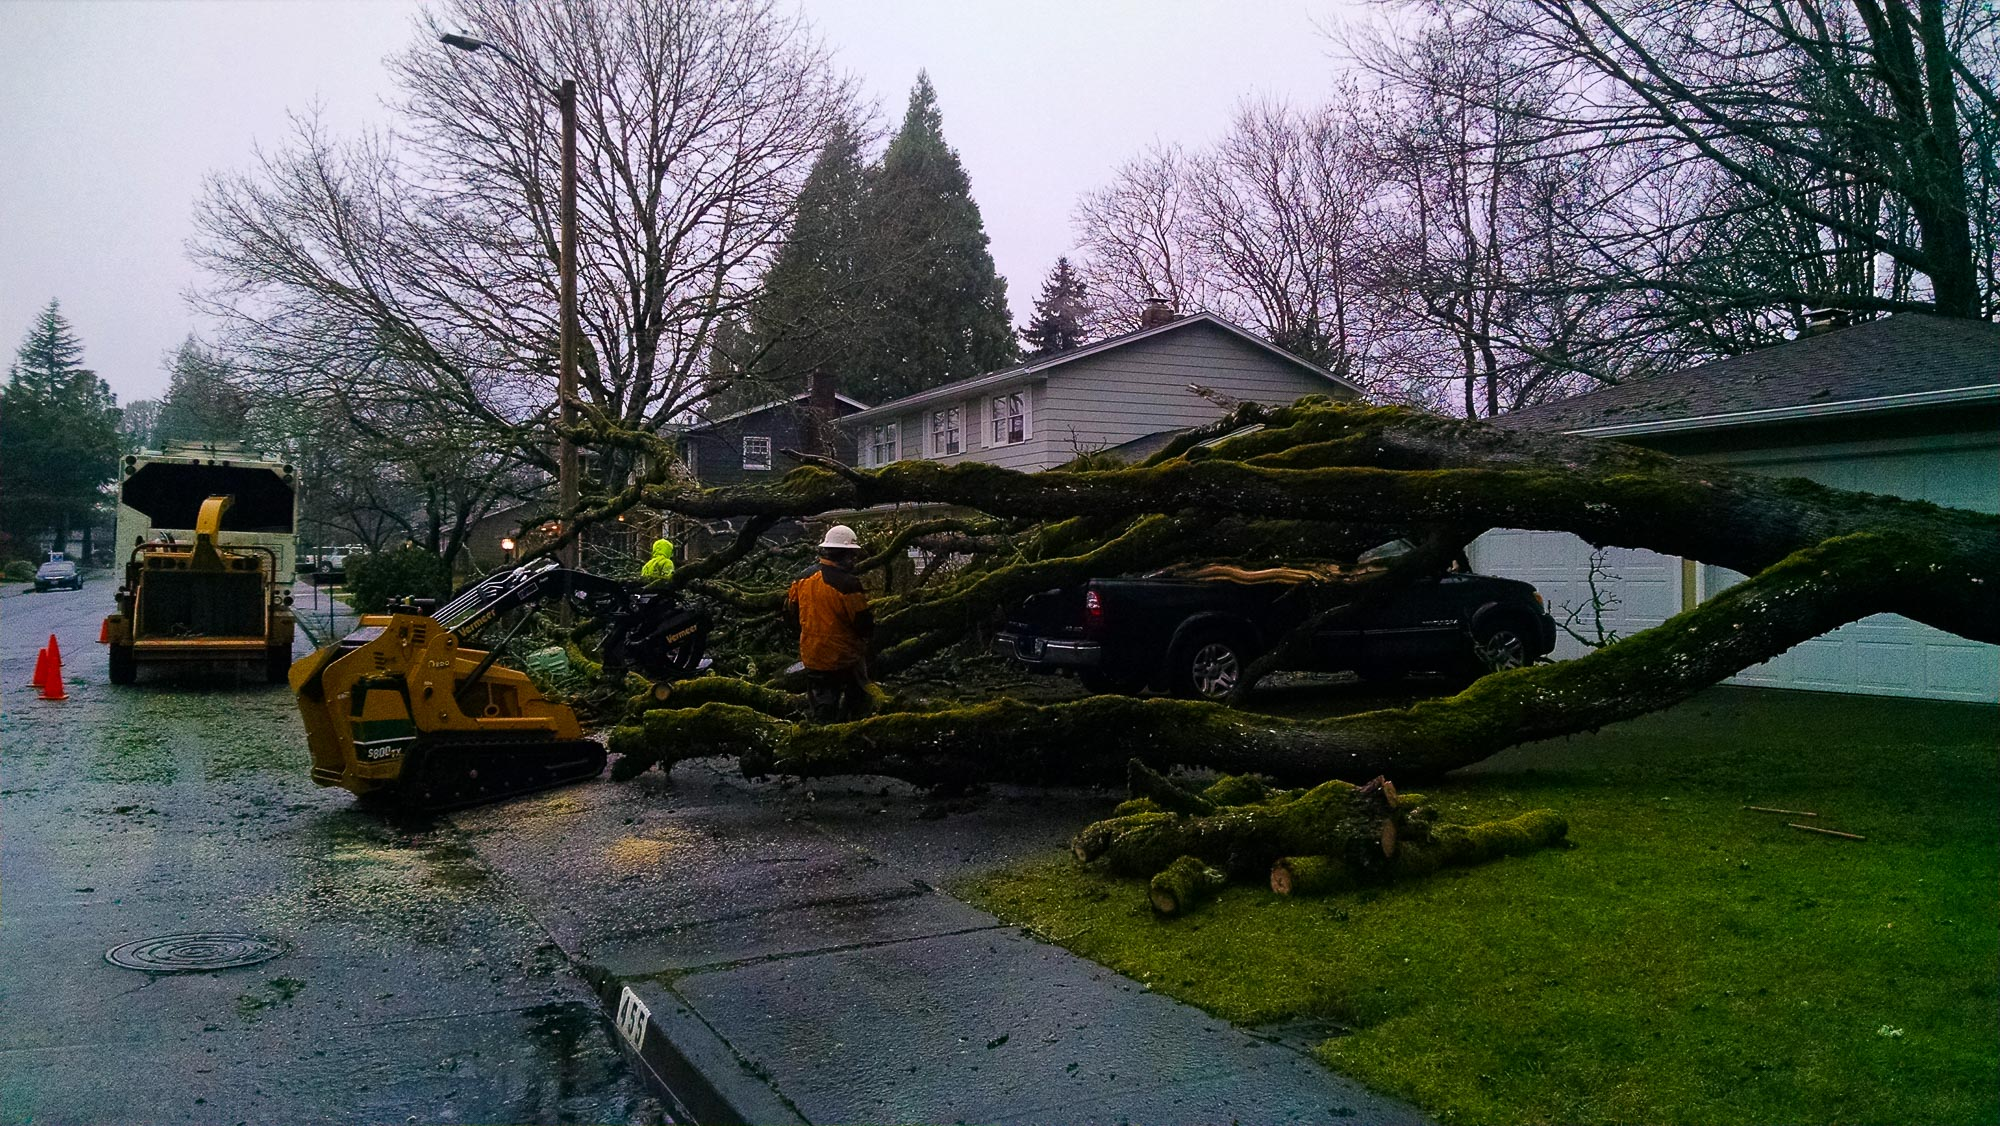 tree-service-removal-pruning-salem-oregon-823